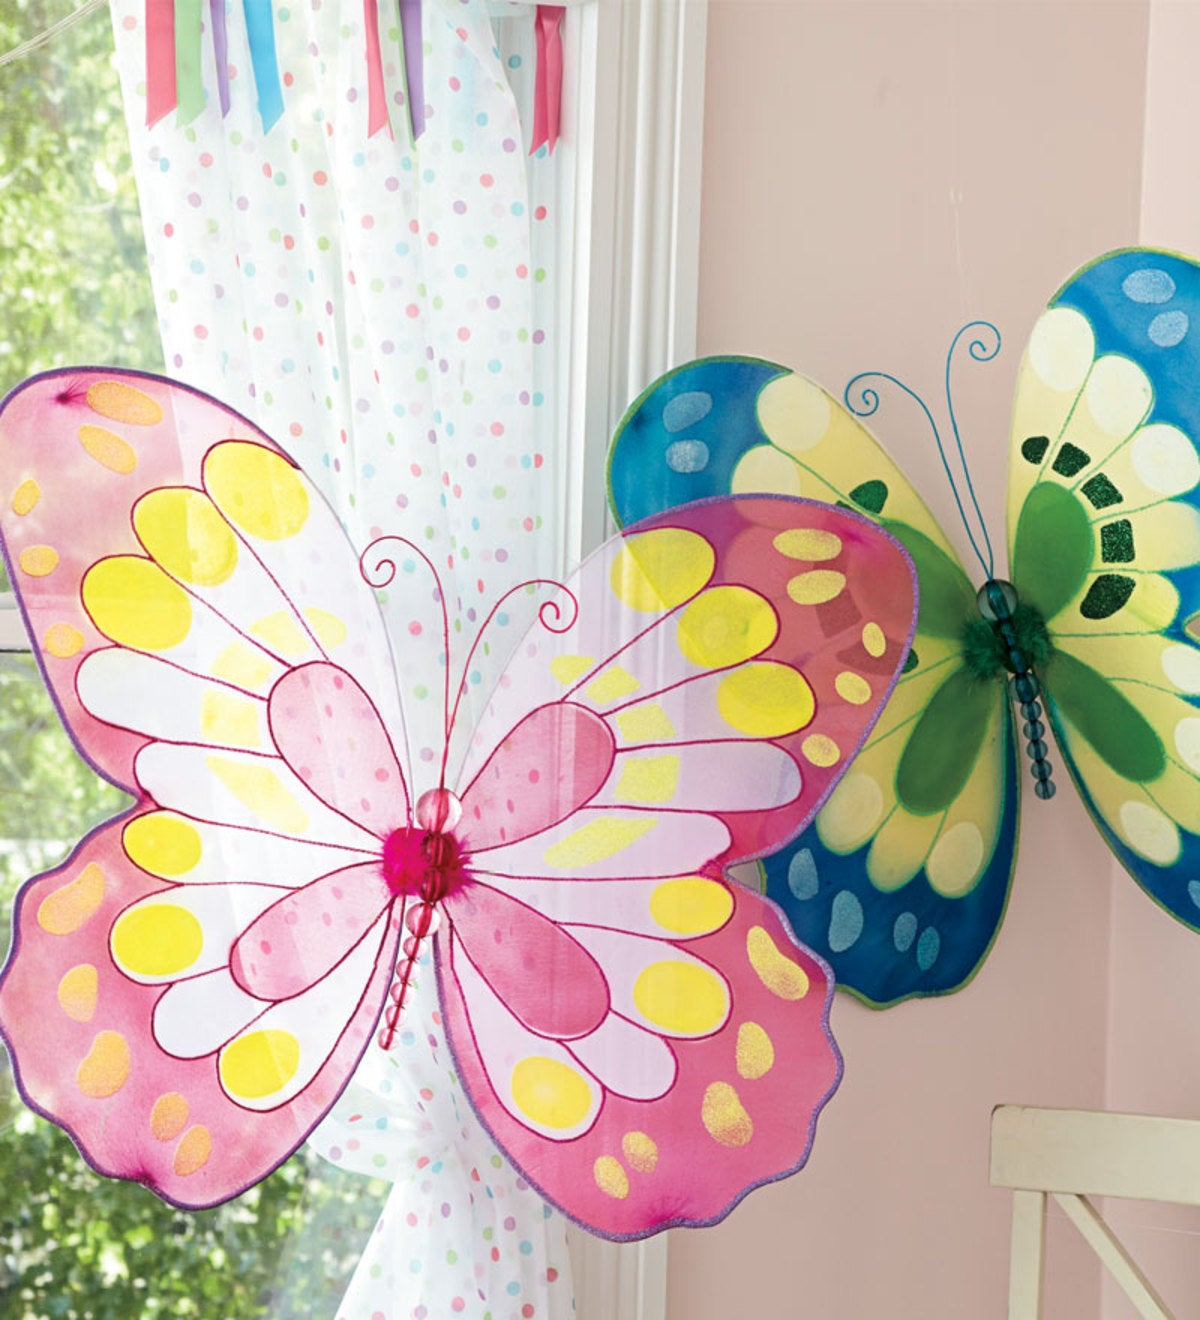 Easy-to-Hang Giant Decorative Butterfly with Bendable Wings and Beaded Body - Blue/Green